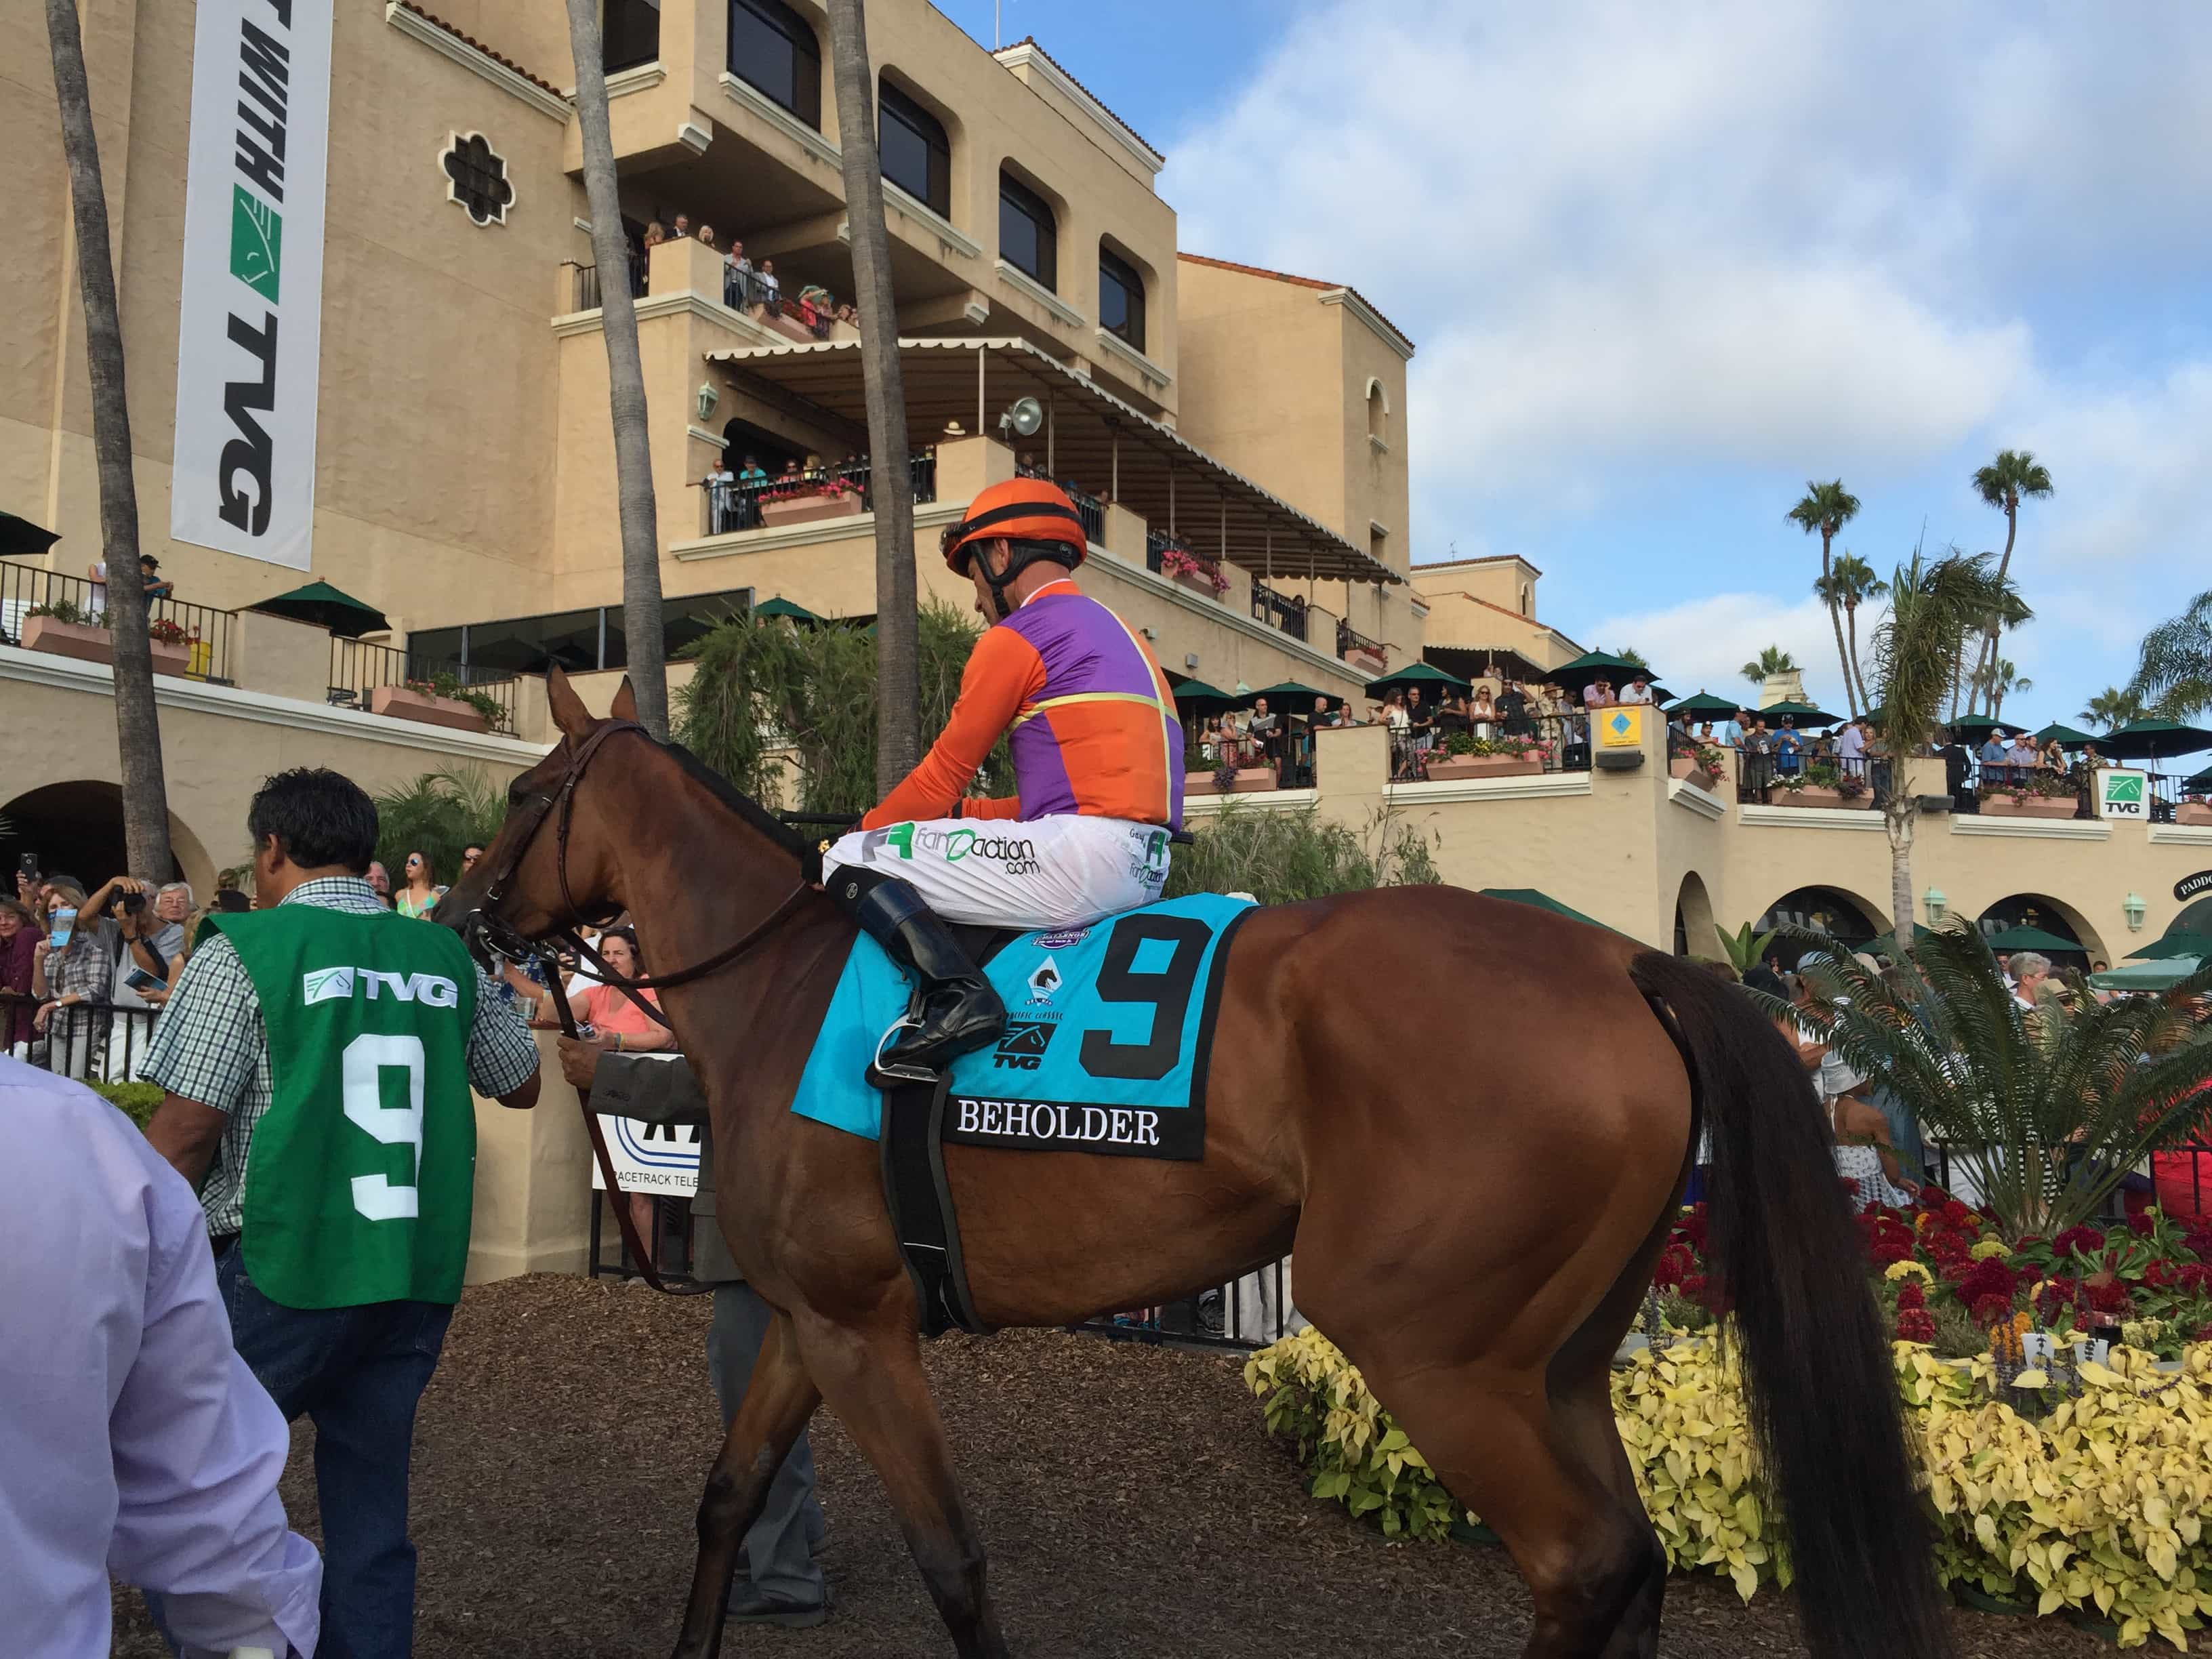 Beholder - PACIFIC CLASSIC (Grade I) - 08-22-15 - R9 - DMR - Photo credit: Melanie Martines